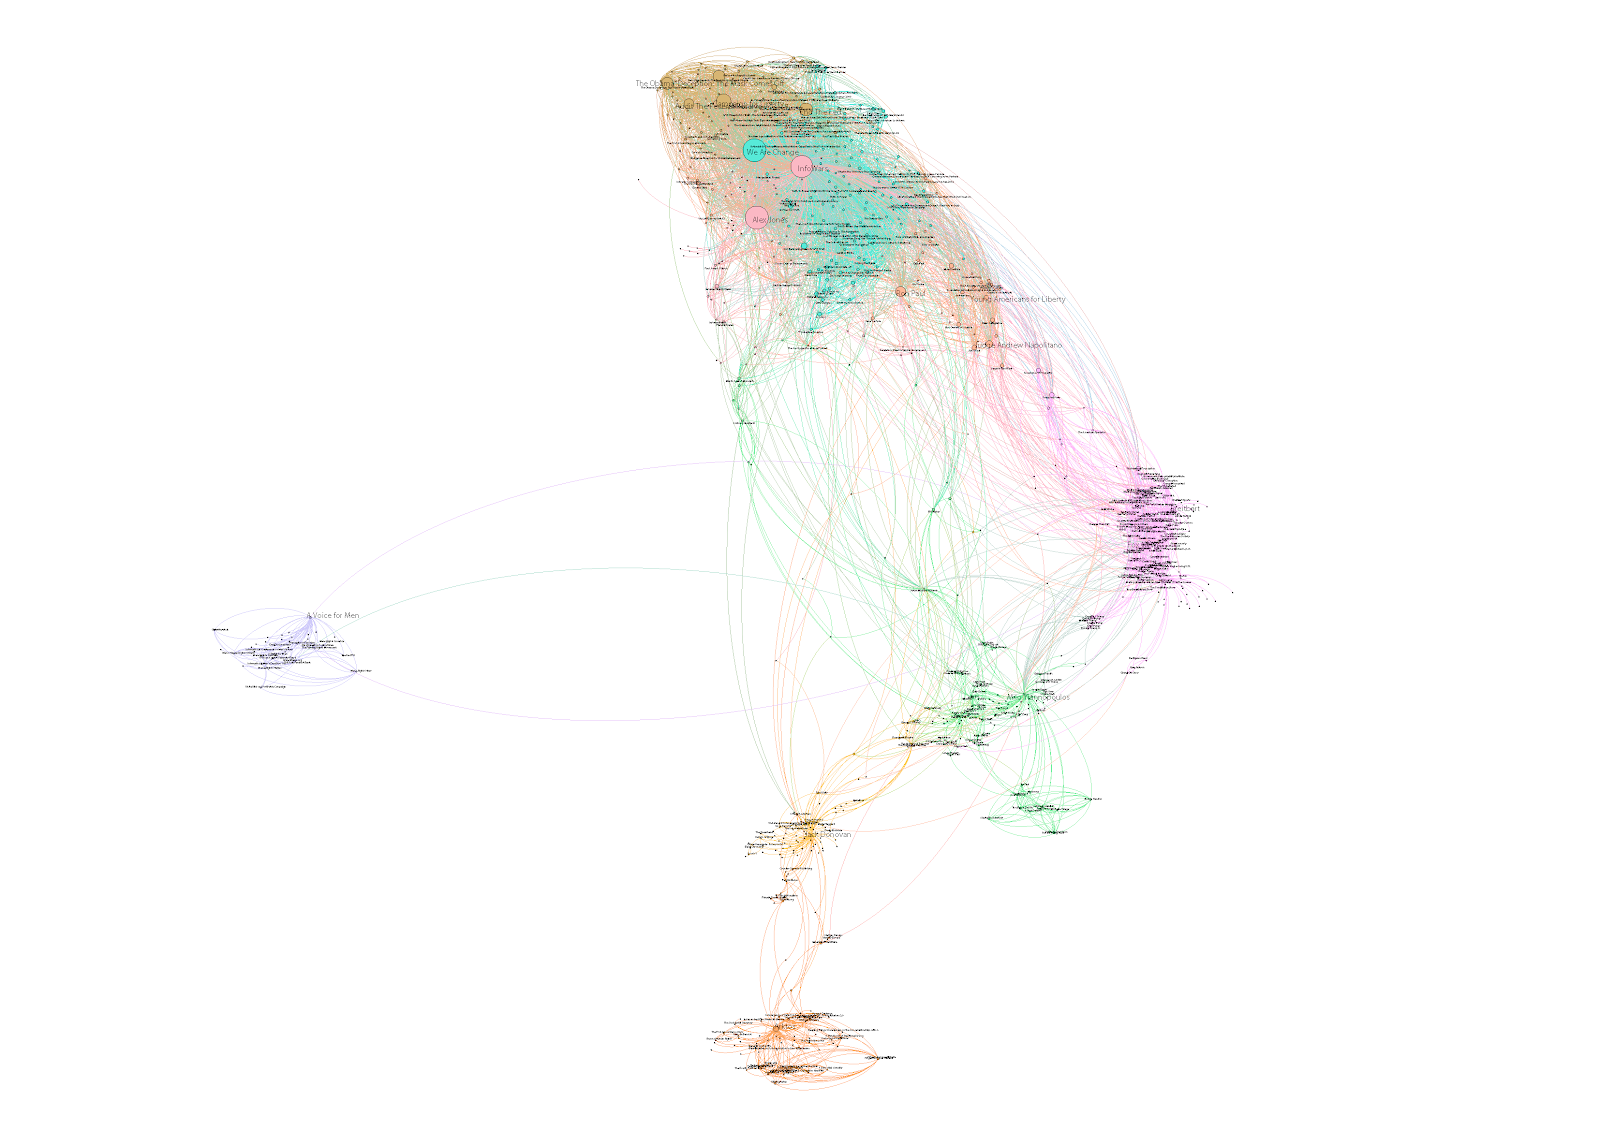 Networks_Combined.png